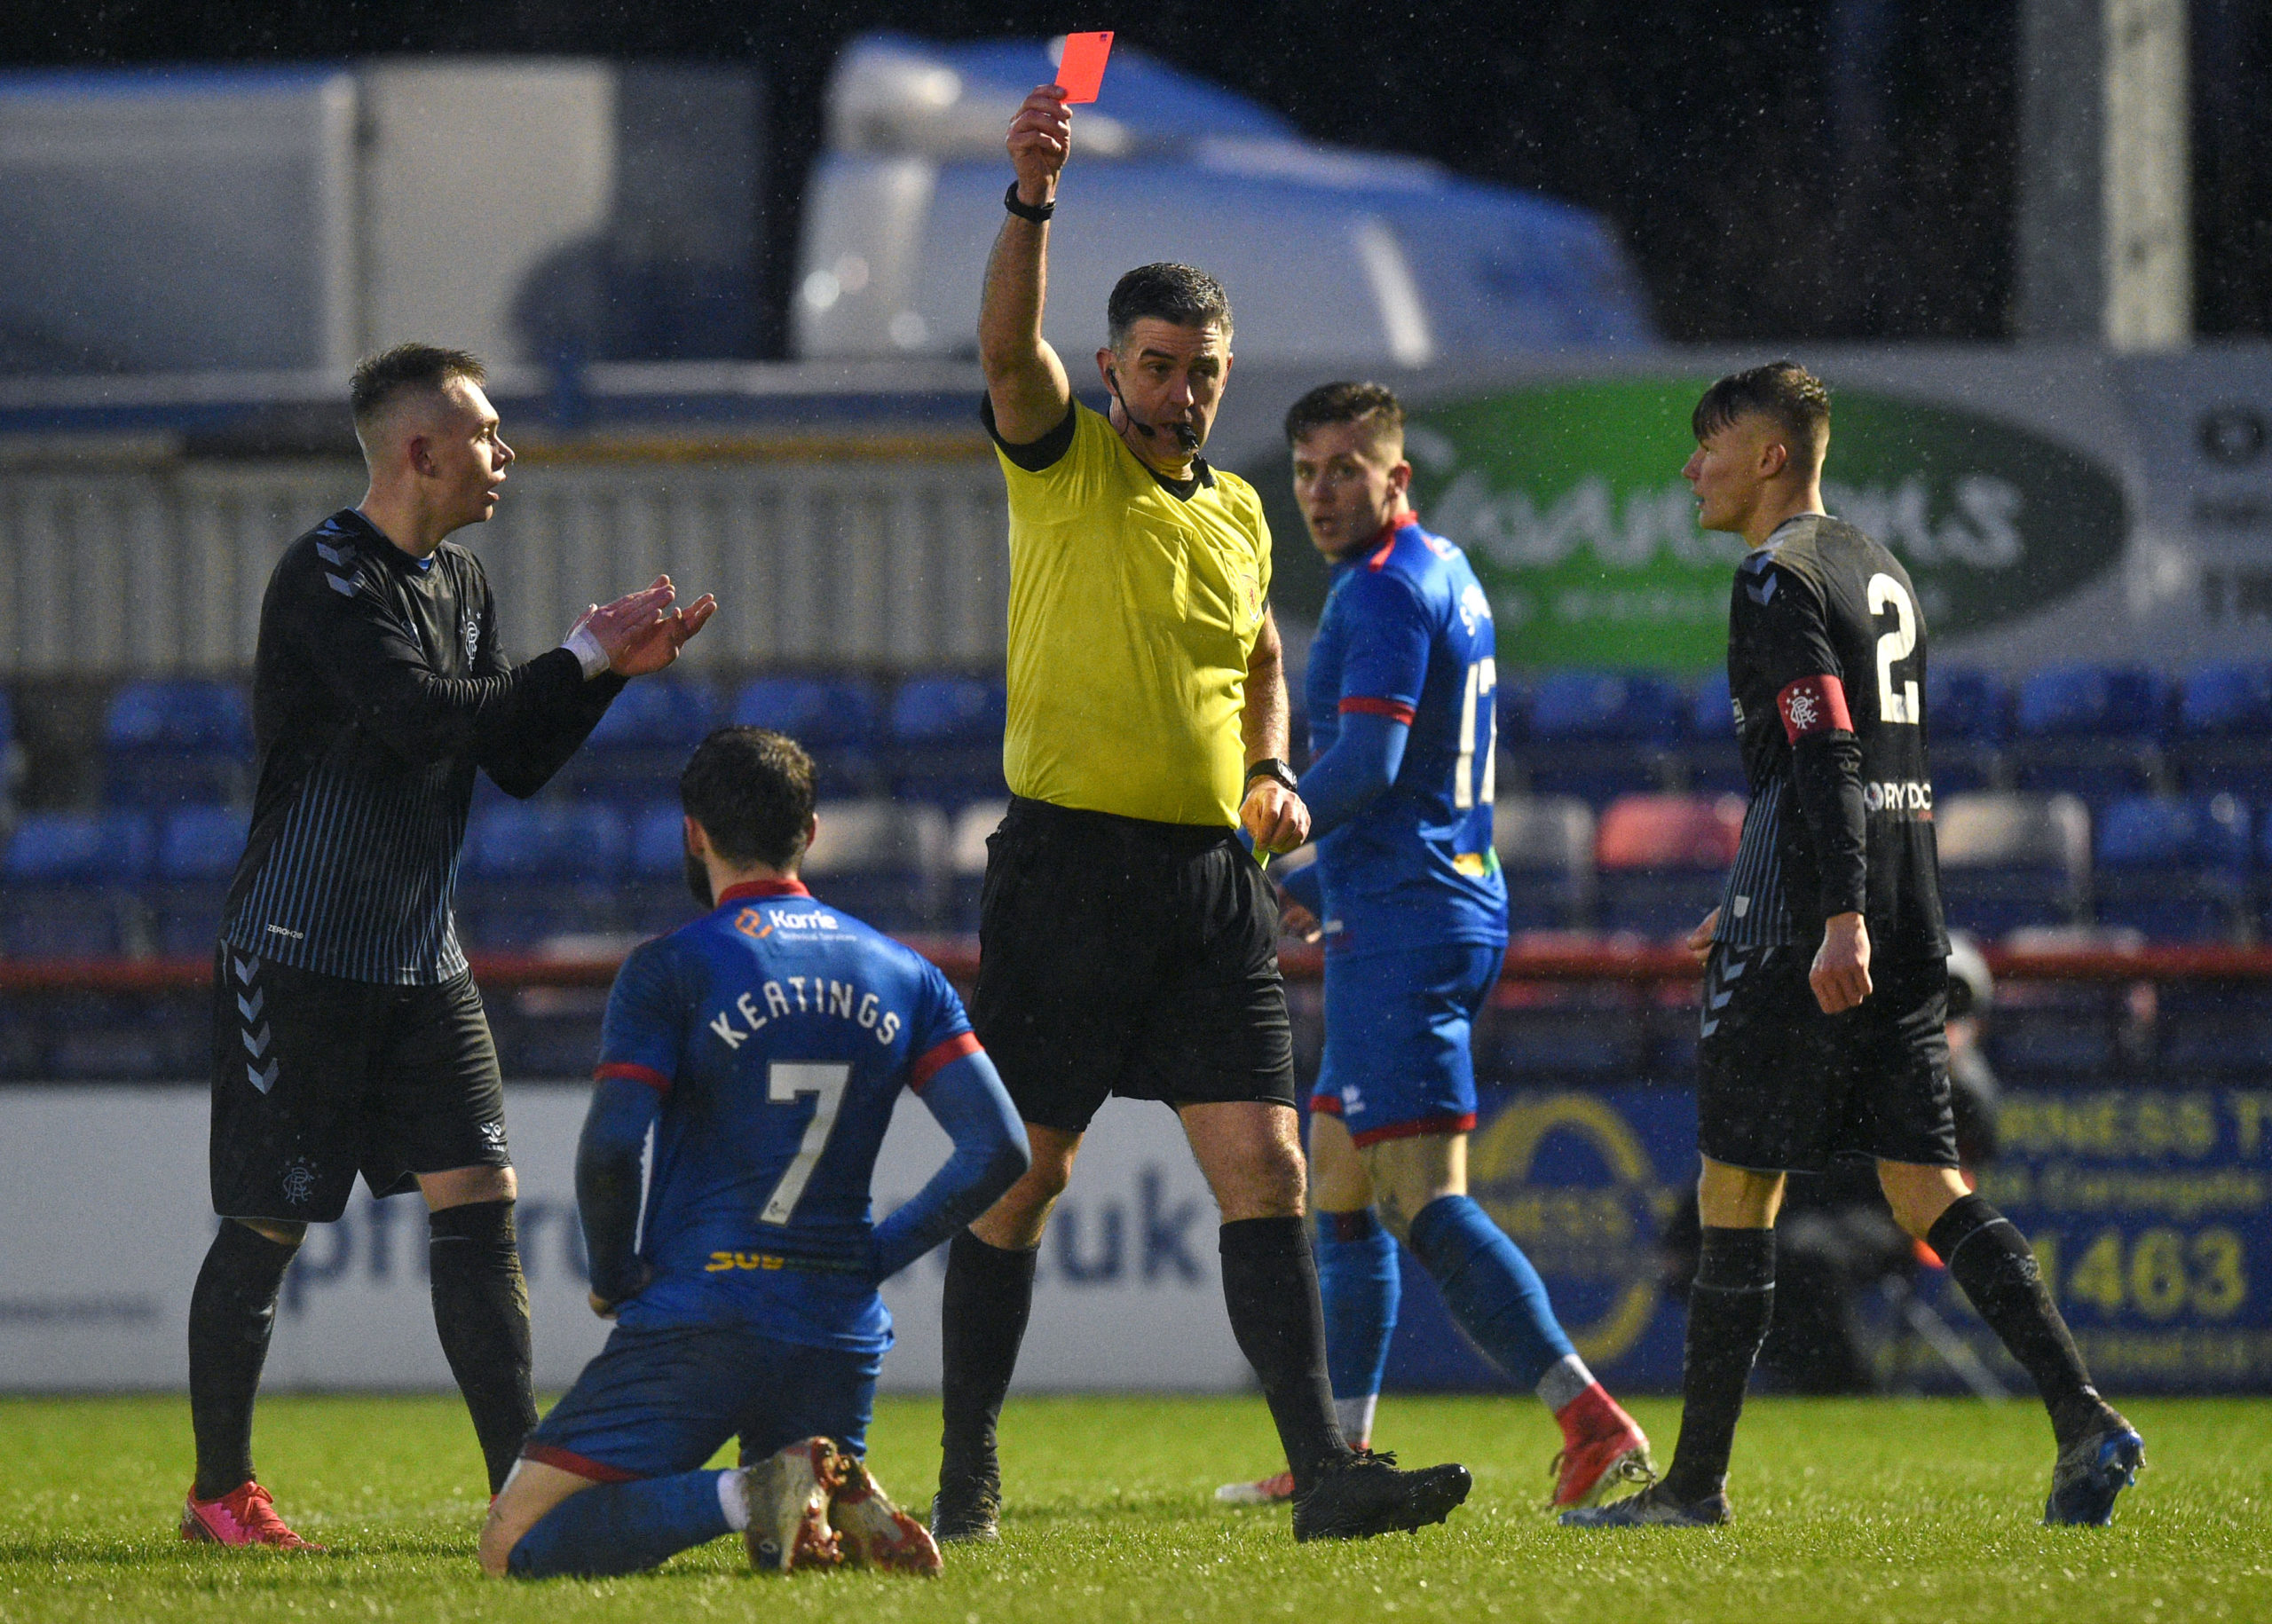 Caley Thistle had fought to have James Keatings' ban overturned to play in the final.